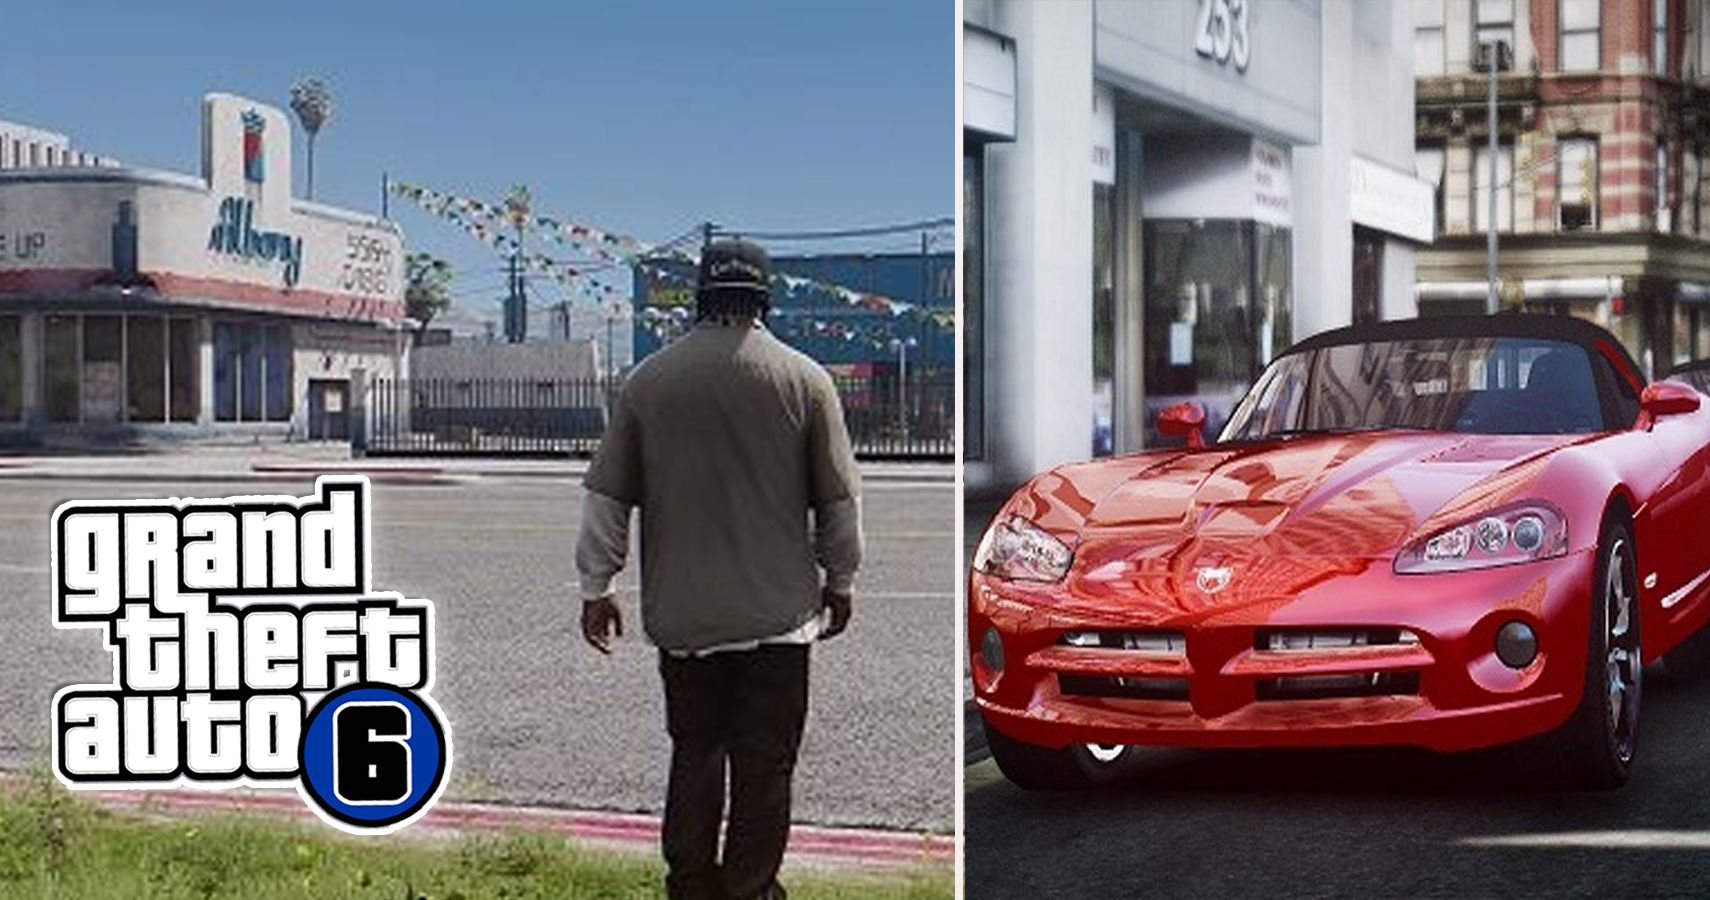 25 Current Grand Theft Auto 6 Rumors That Make Us Want It